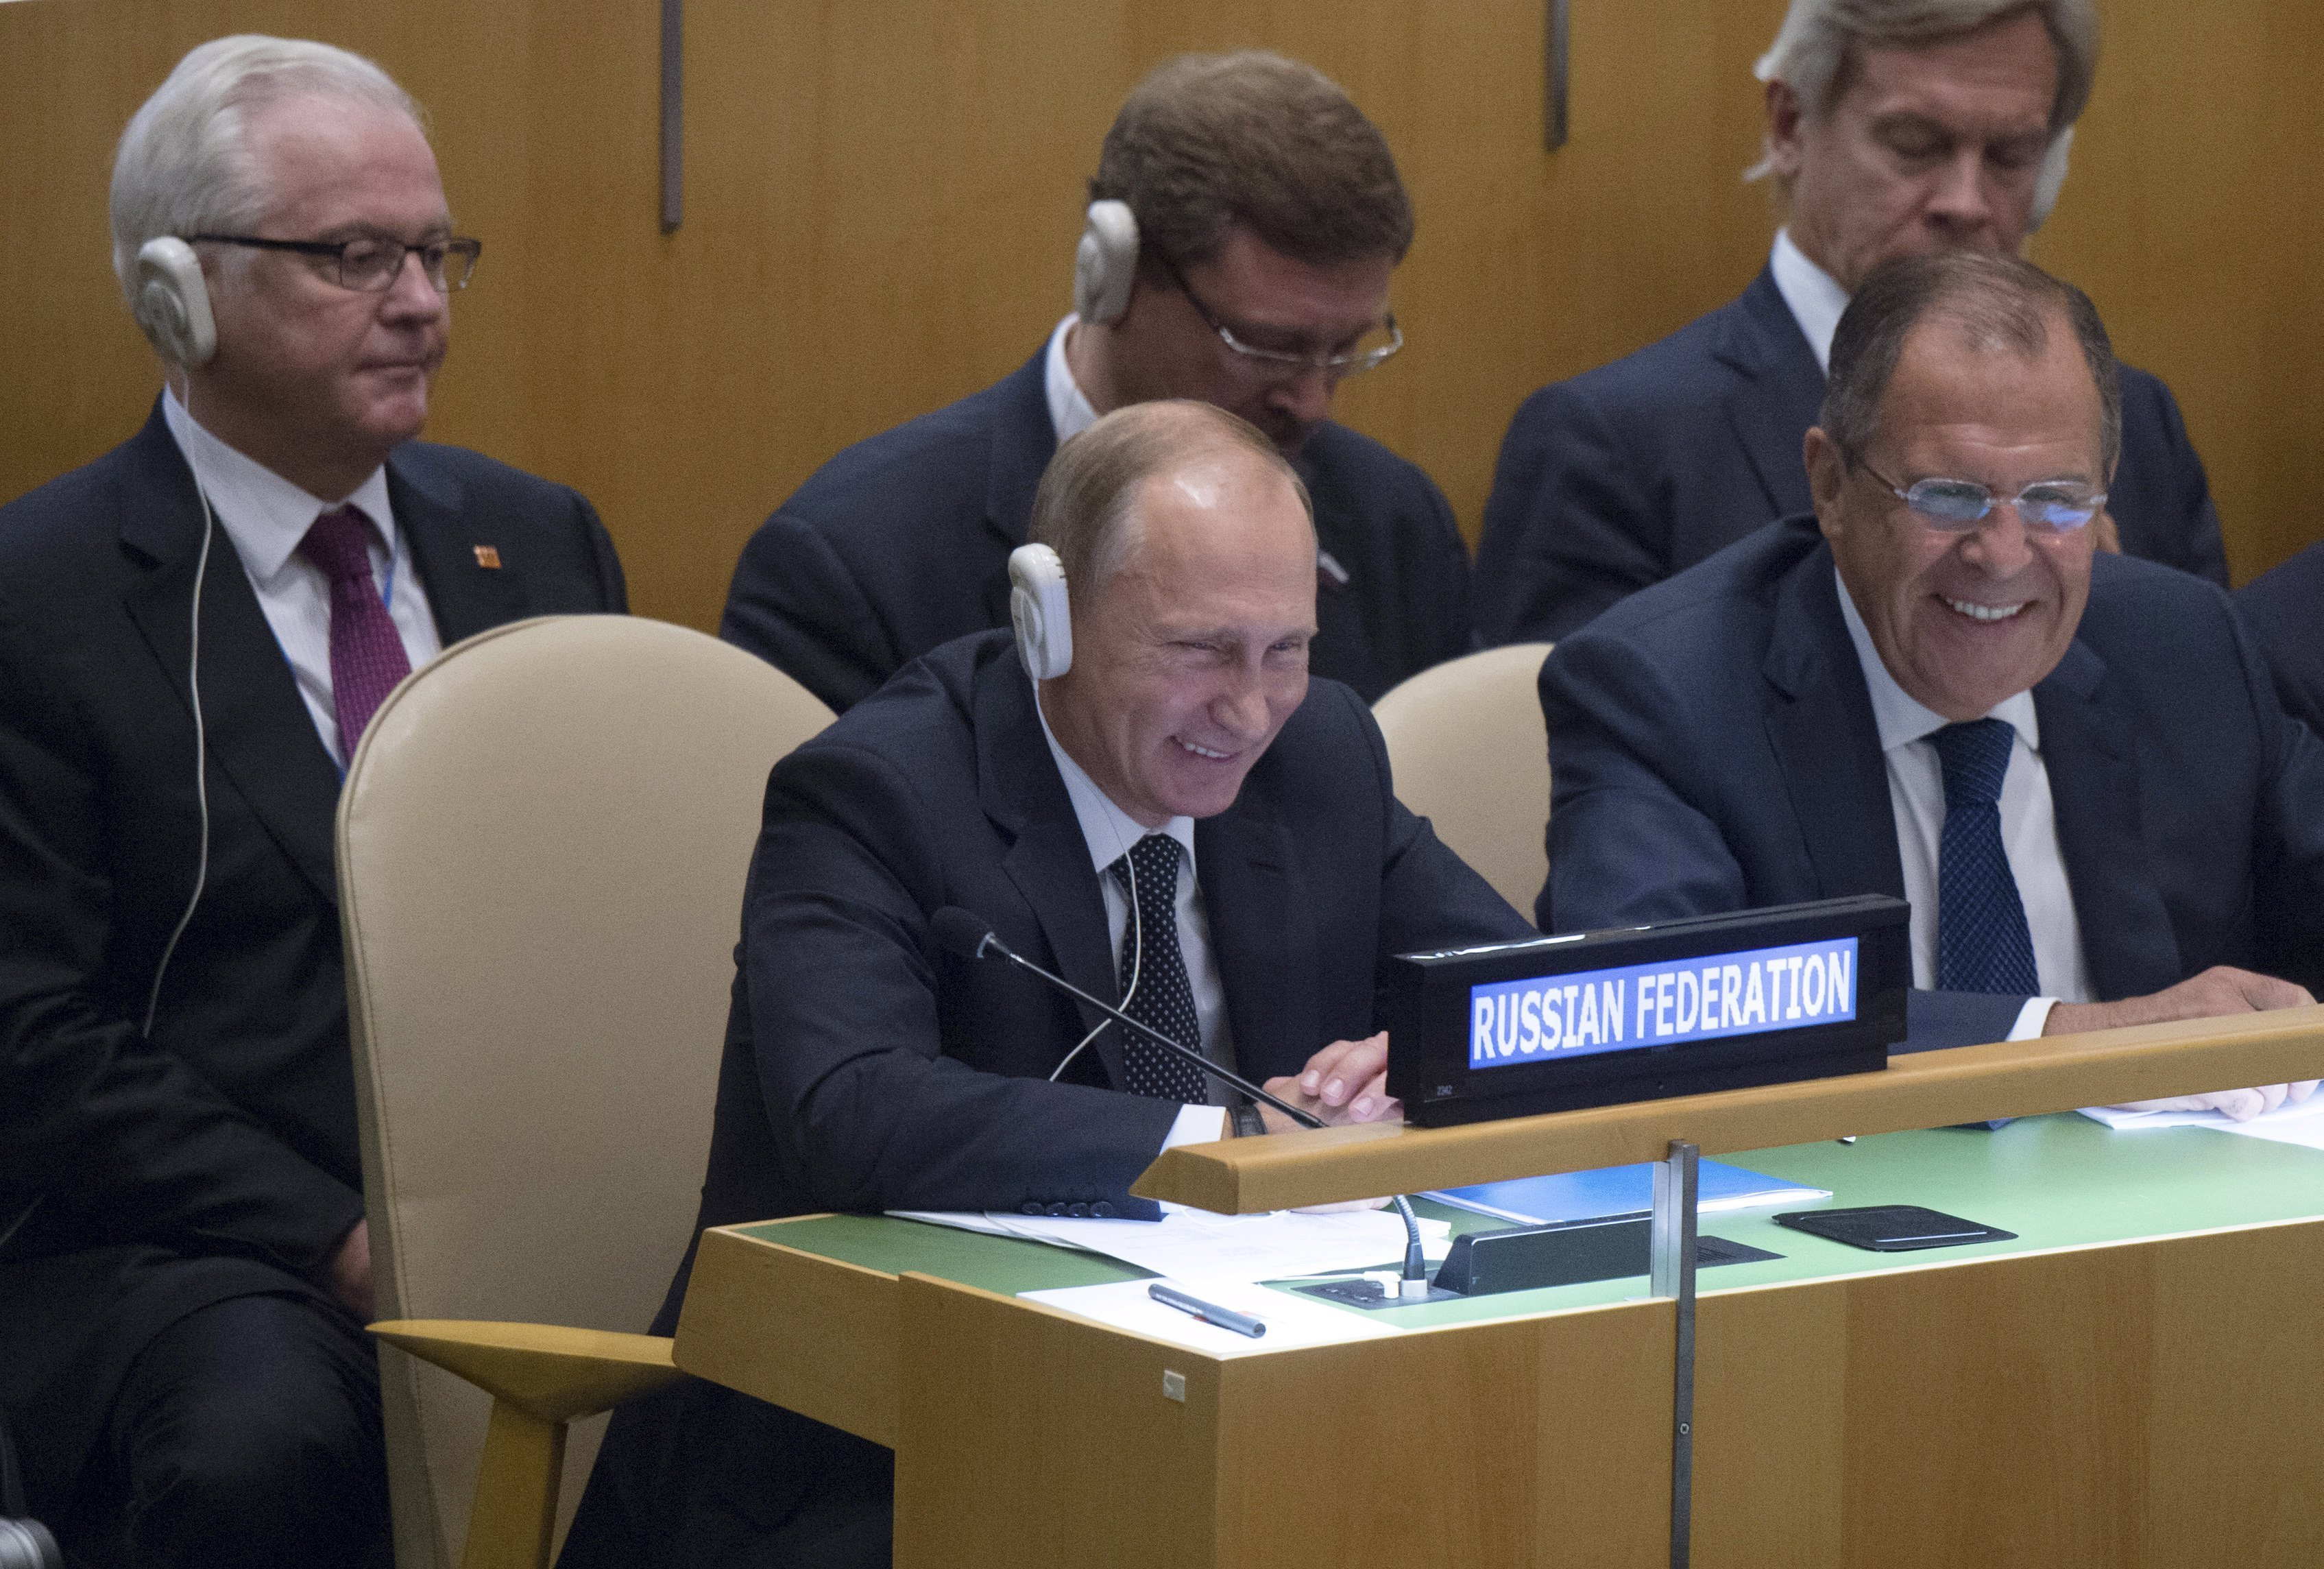 Russian President Vladimir Putin (L, front), Foreign Minister Sergei Lavrov (R, front), Russian U.N. Ambassador Vitaly Churkin (L, back) and other members of the delegation attend the 70th session of the United Nations General Assembly at the U.N. headquarters in New York, September 28, 2015